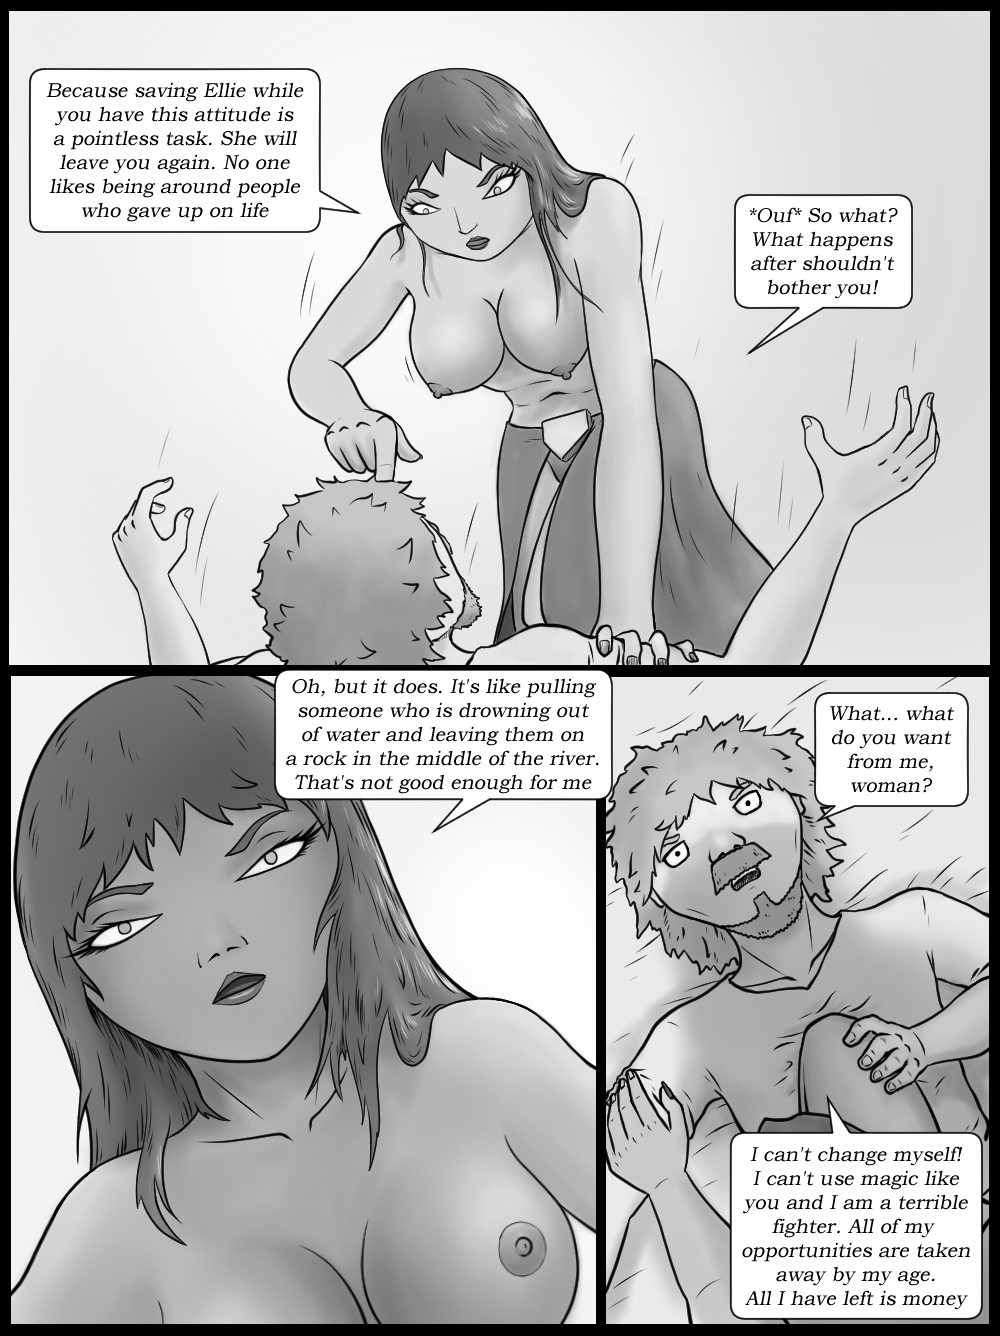 Page 106 - Not good enough